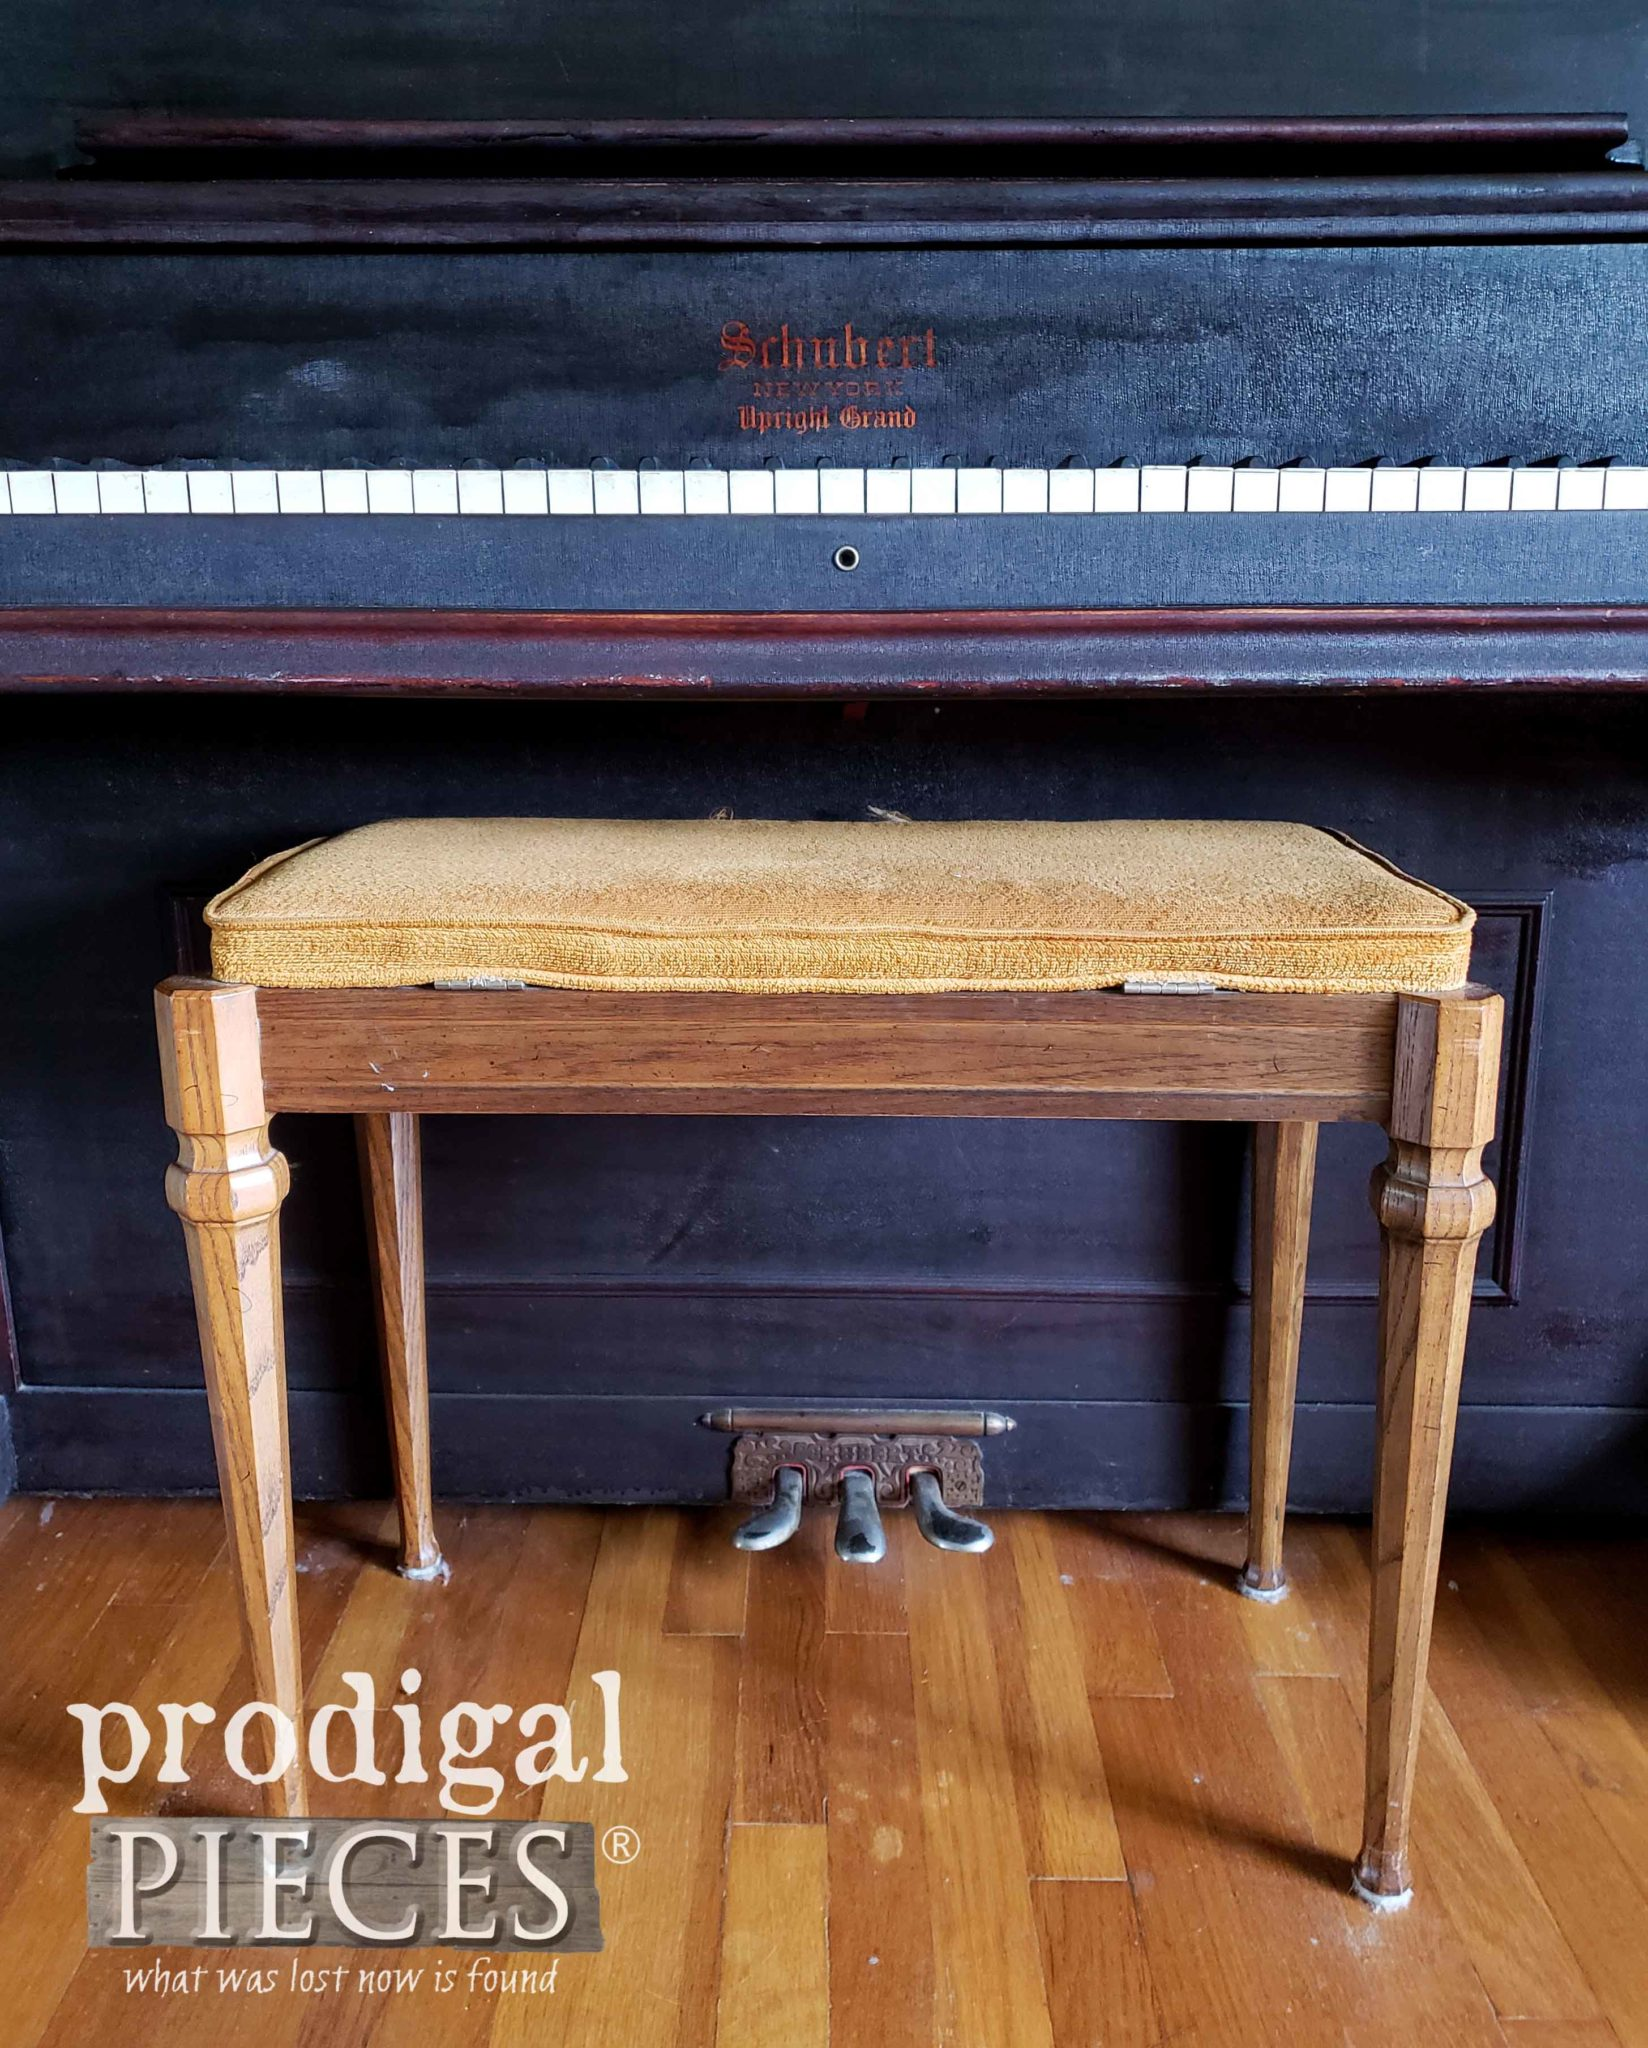 Vintage Piano Bench Before Makeover by Prodigal Pieces | prodigalpieces.com